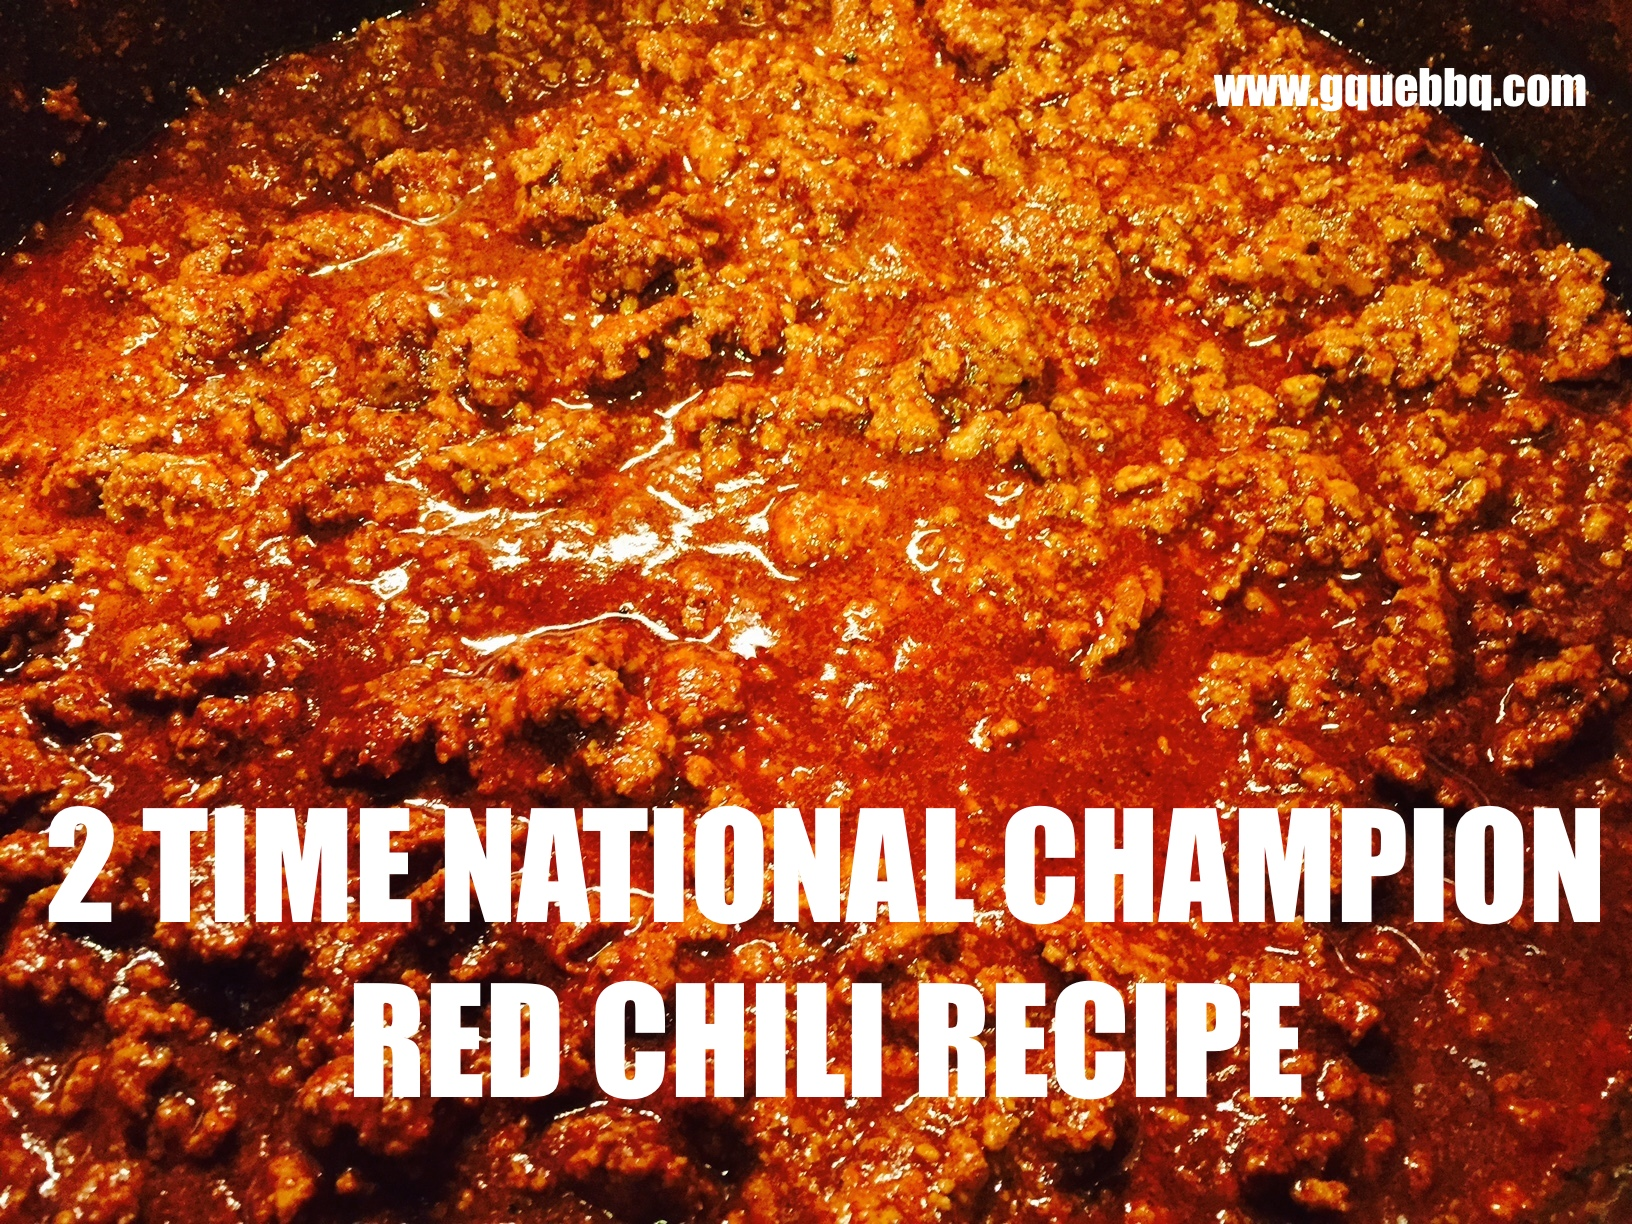 National Champion Red Chili Recipe | GQue BBQ